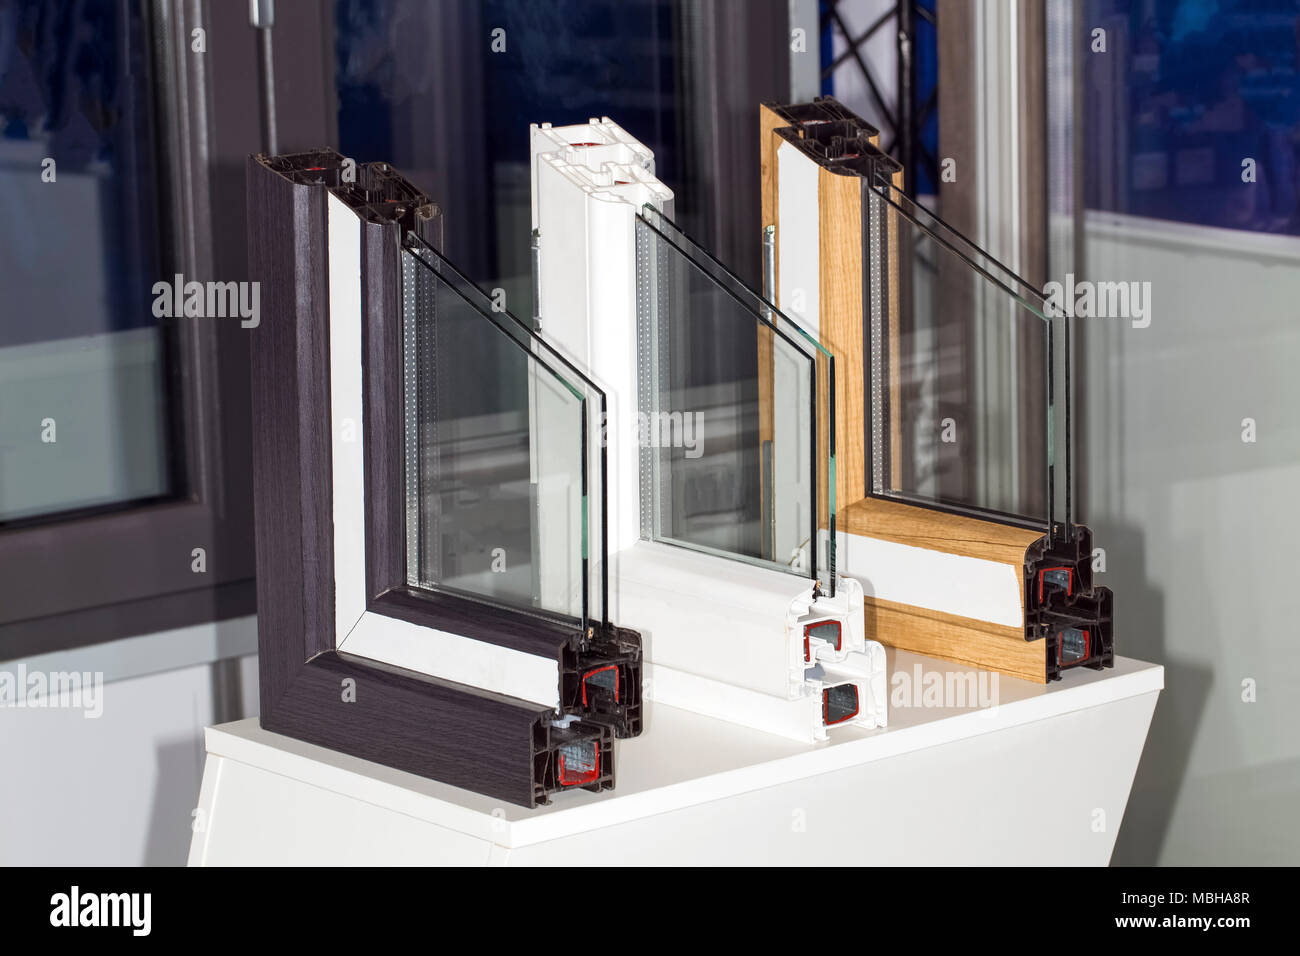 hermetical stockfotos hermetical bilder alamy. Black Bedroom Furniture Sets. Home Design Ideas